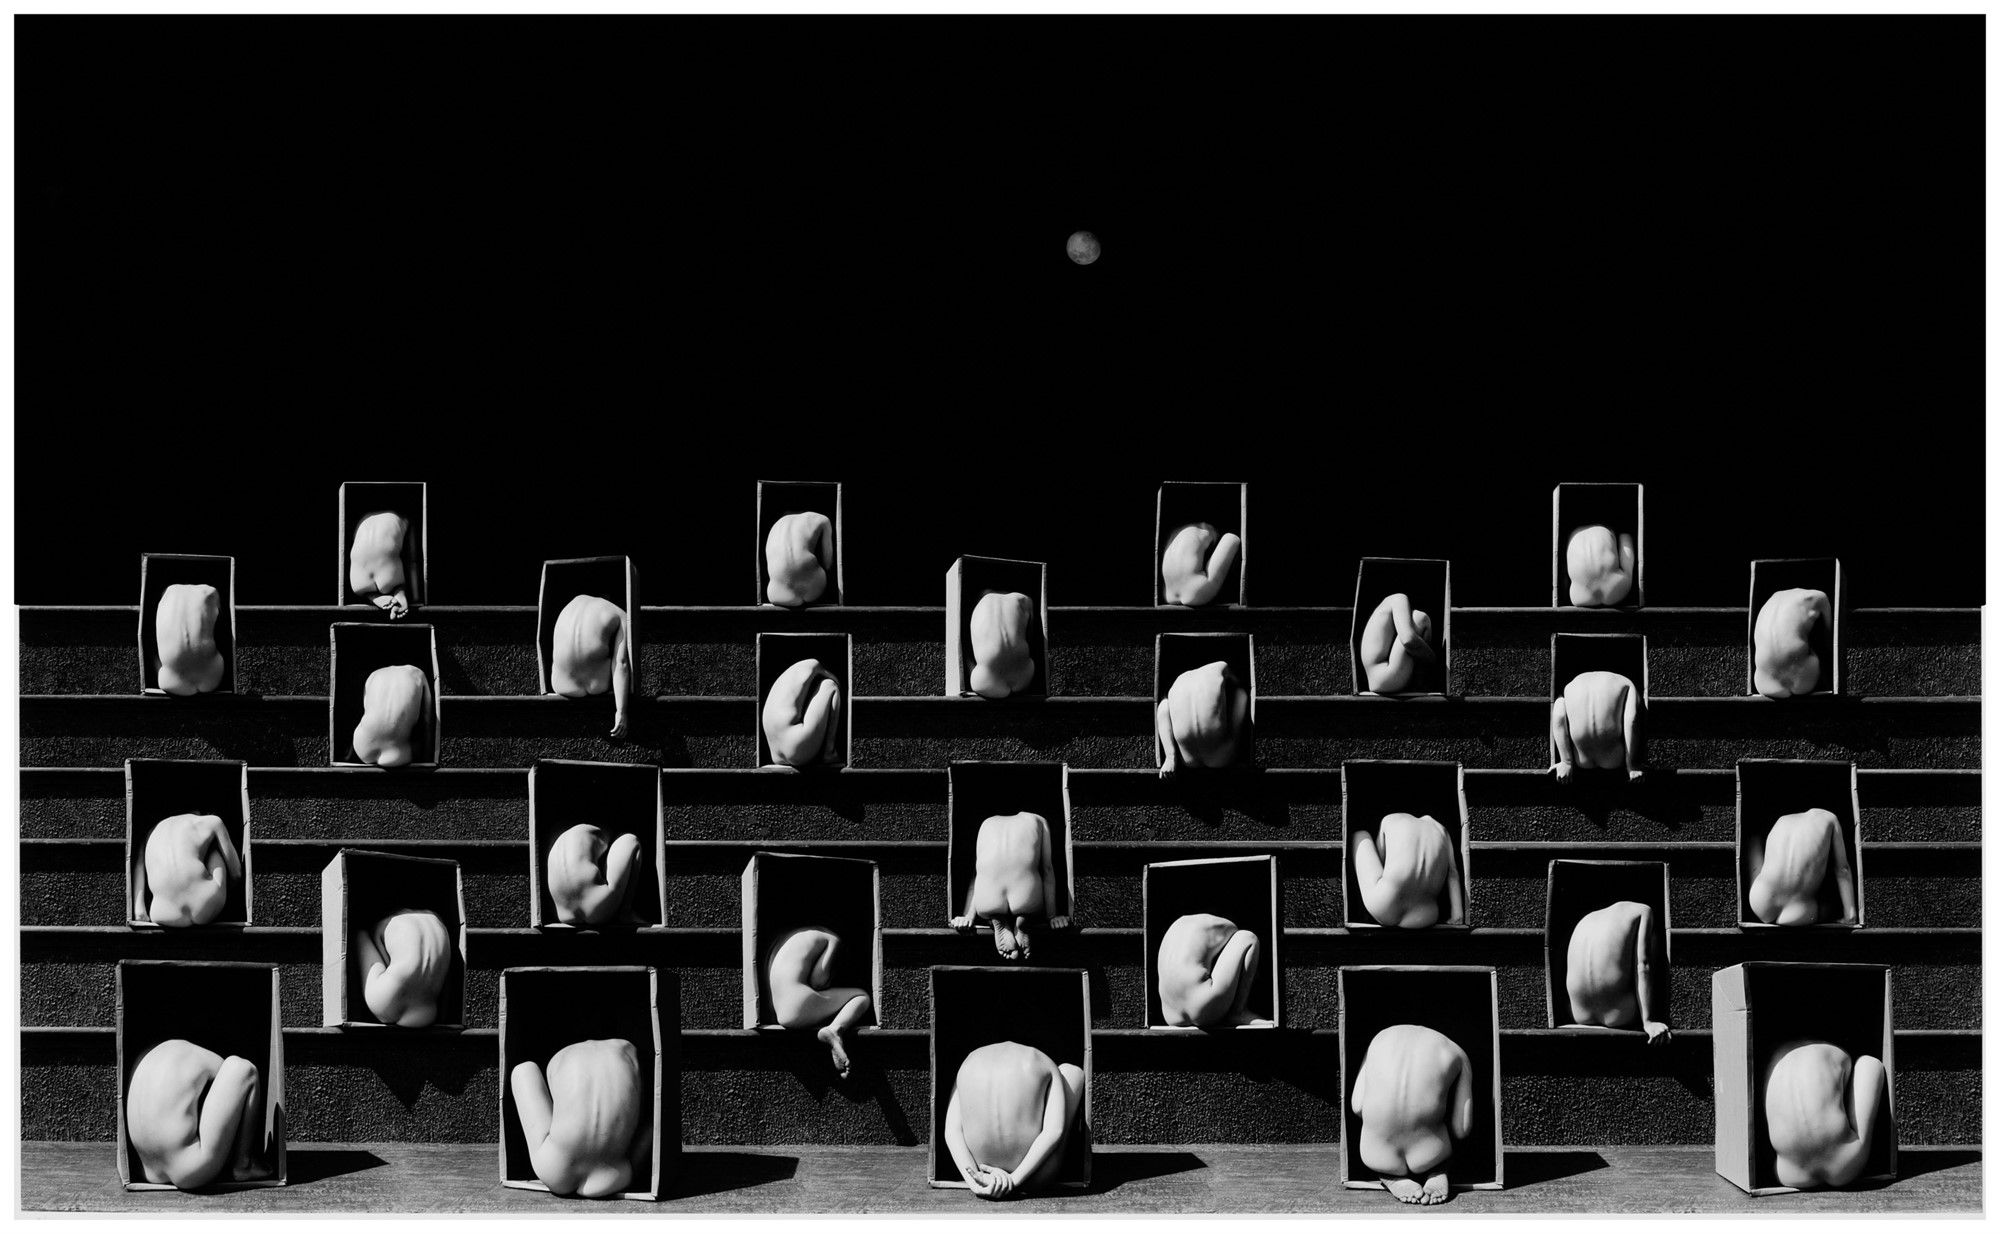 The New Crowd #39 by Misha Gordin